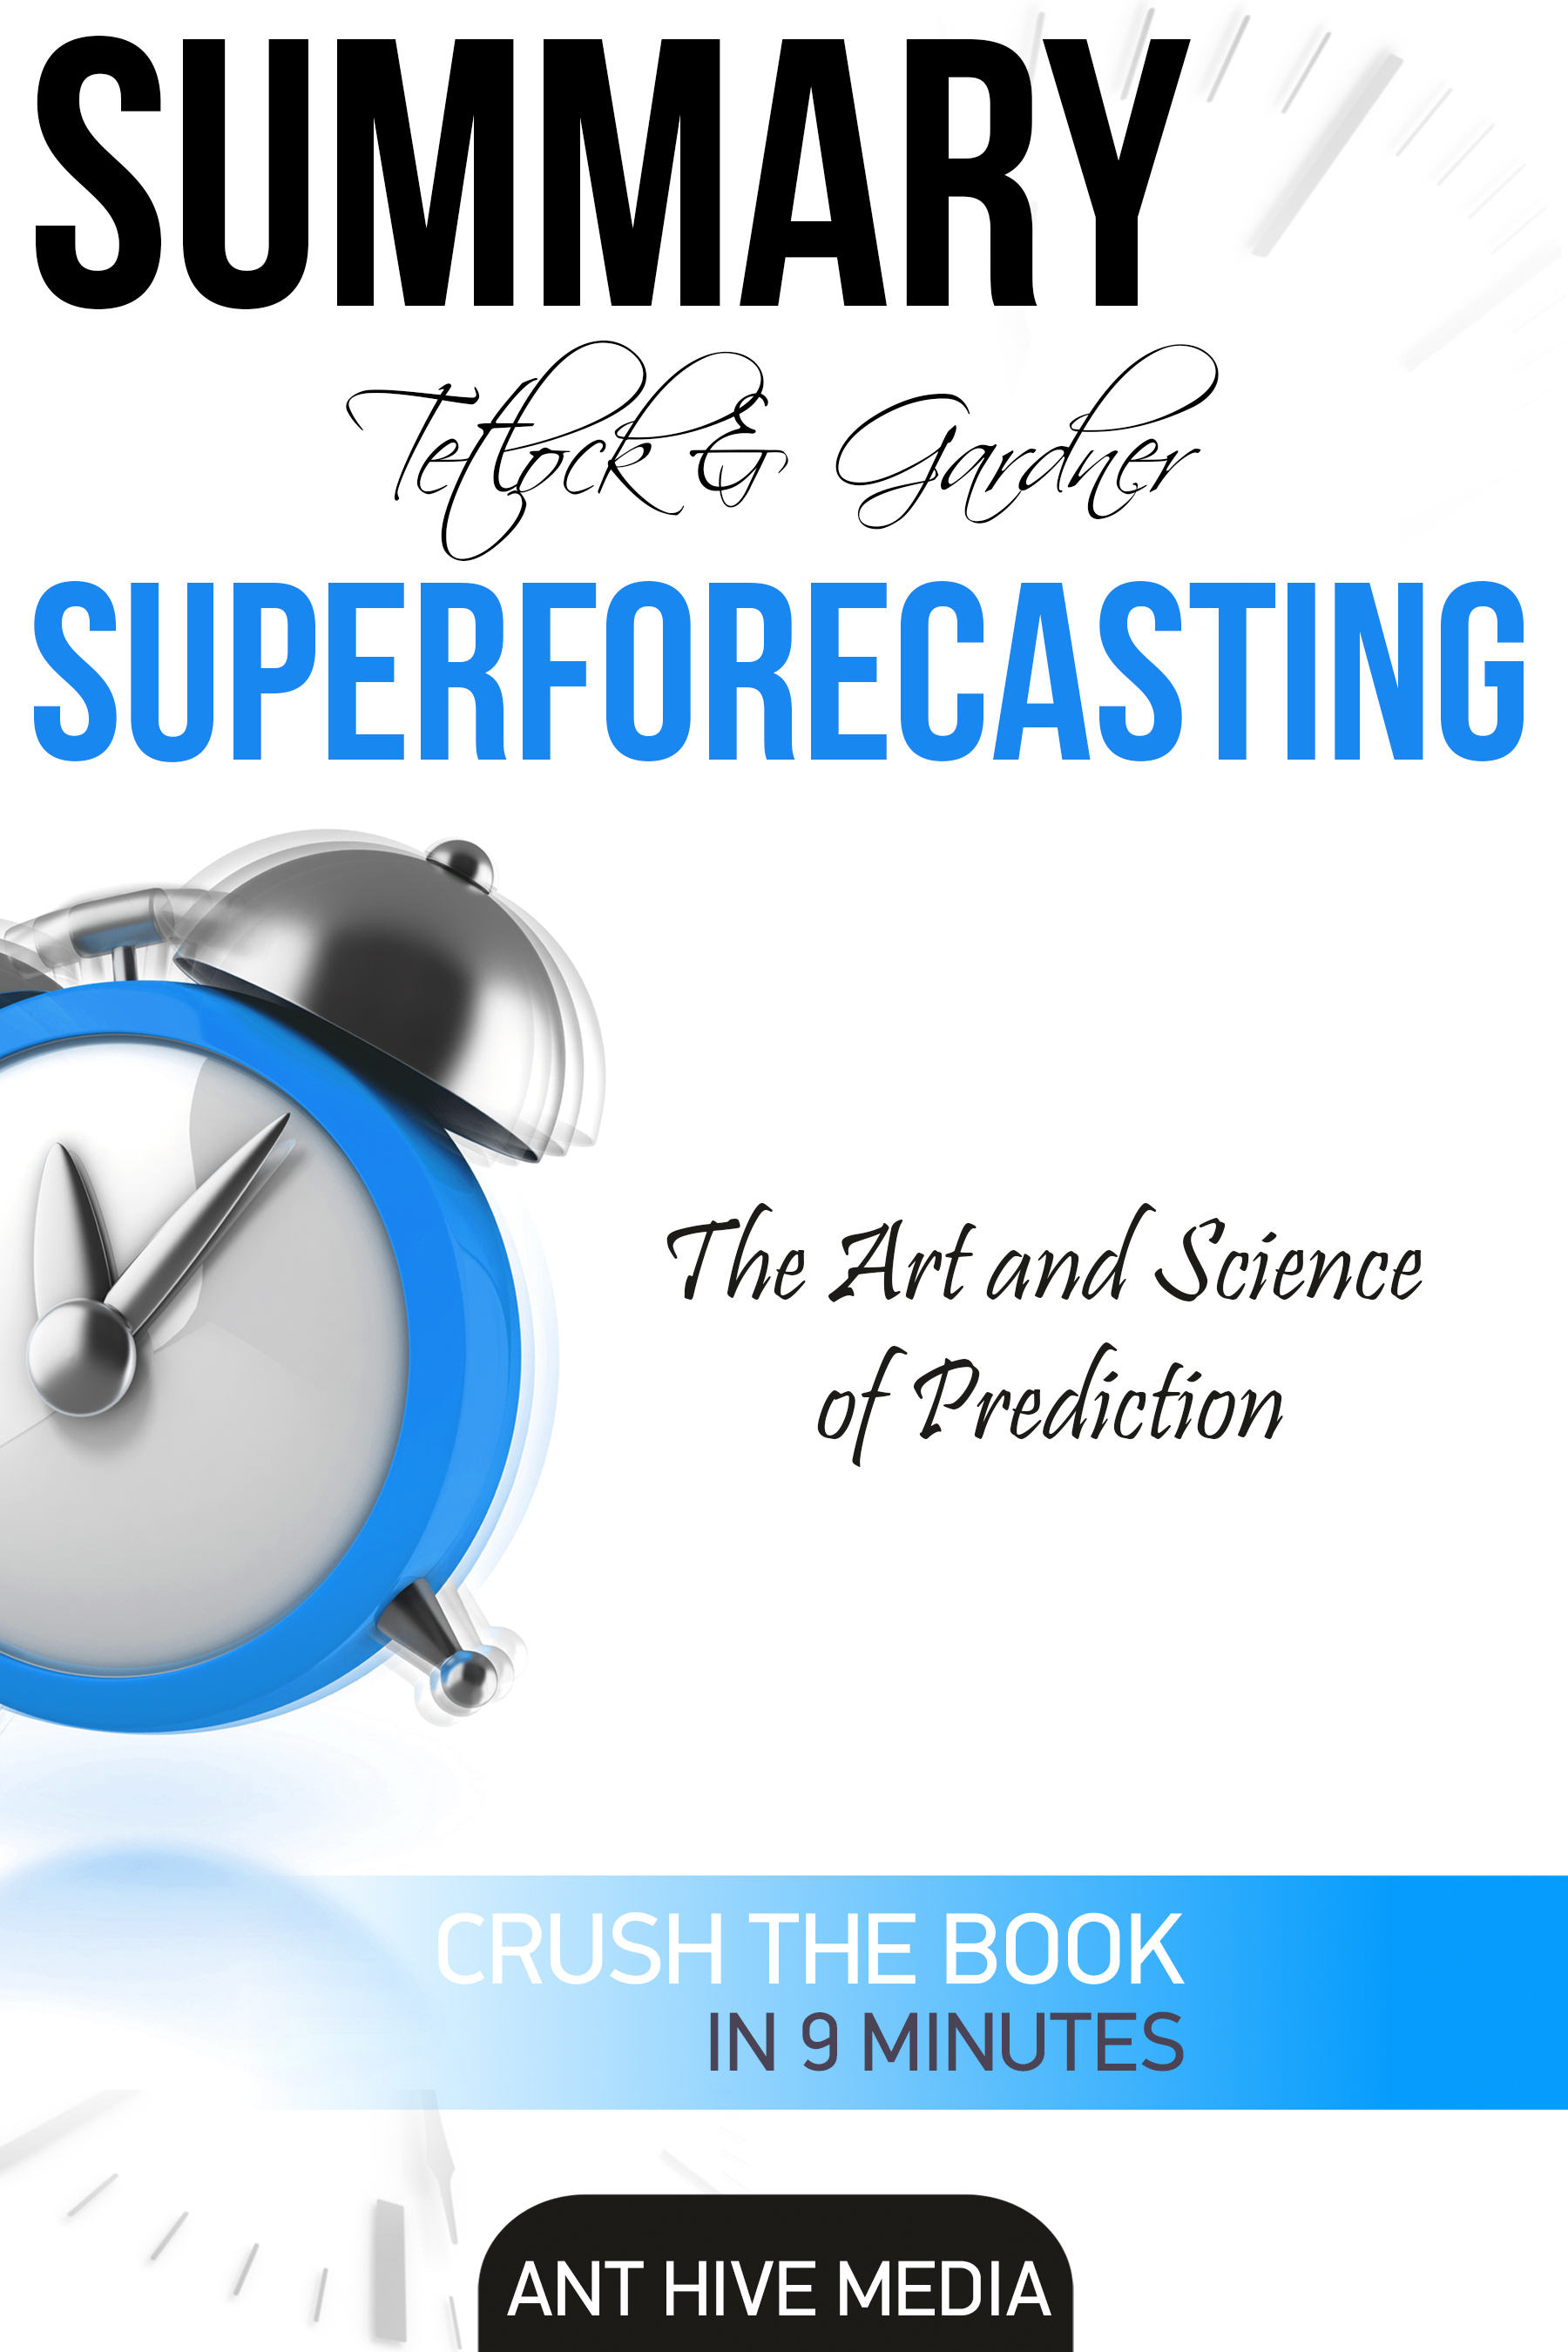 Tetlock and Gardner's Superforecasting: The Art and Science of Prediction Summary